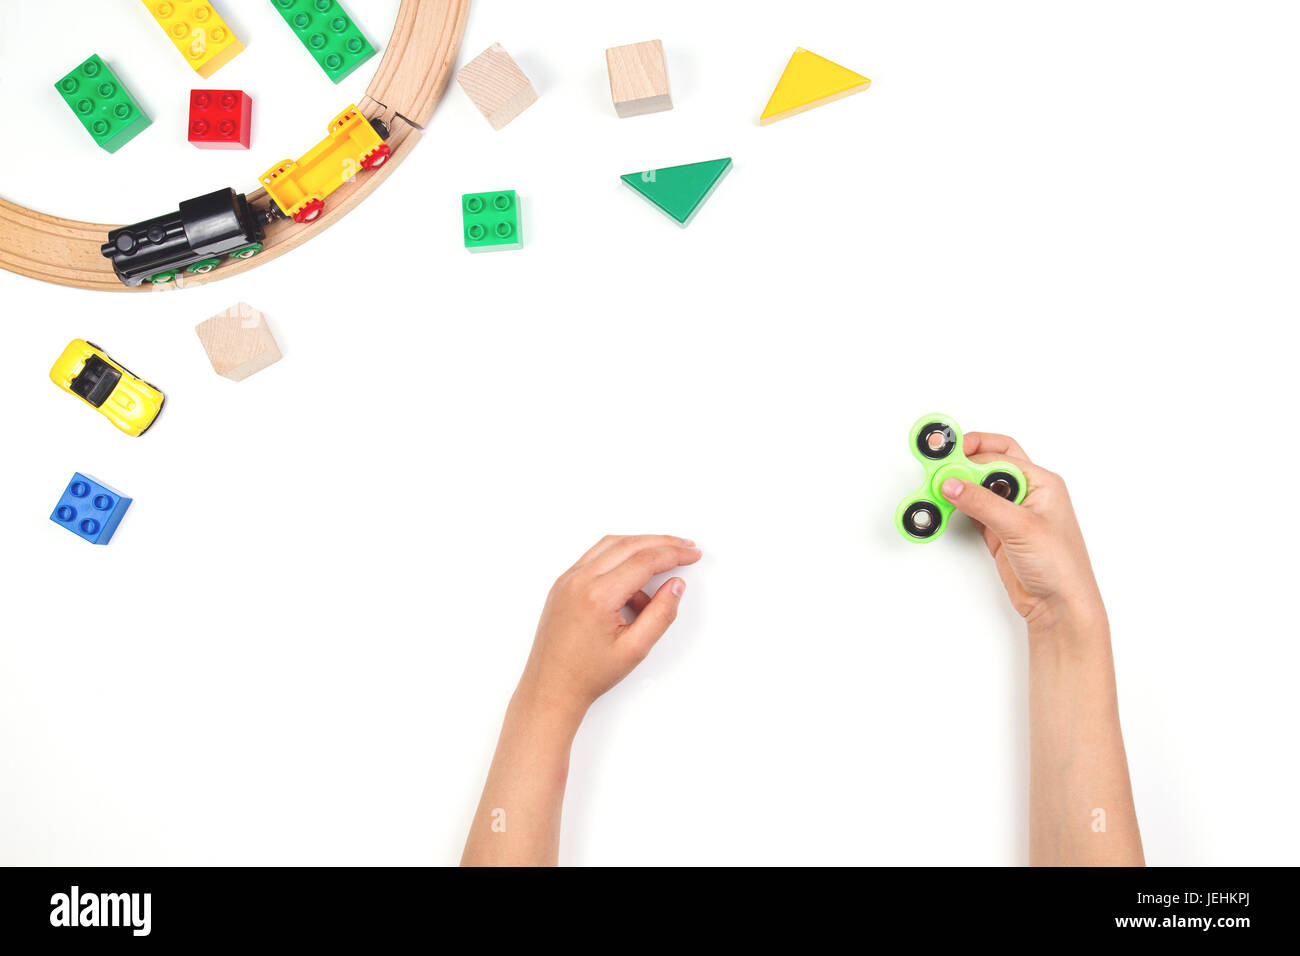 Kids hands playing with fidget spinner toy. Many colorful toys on white background. Stock Photo